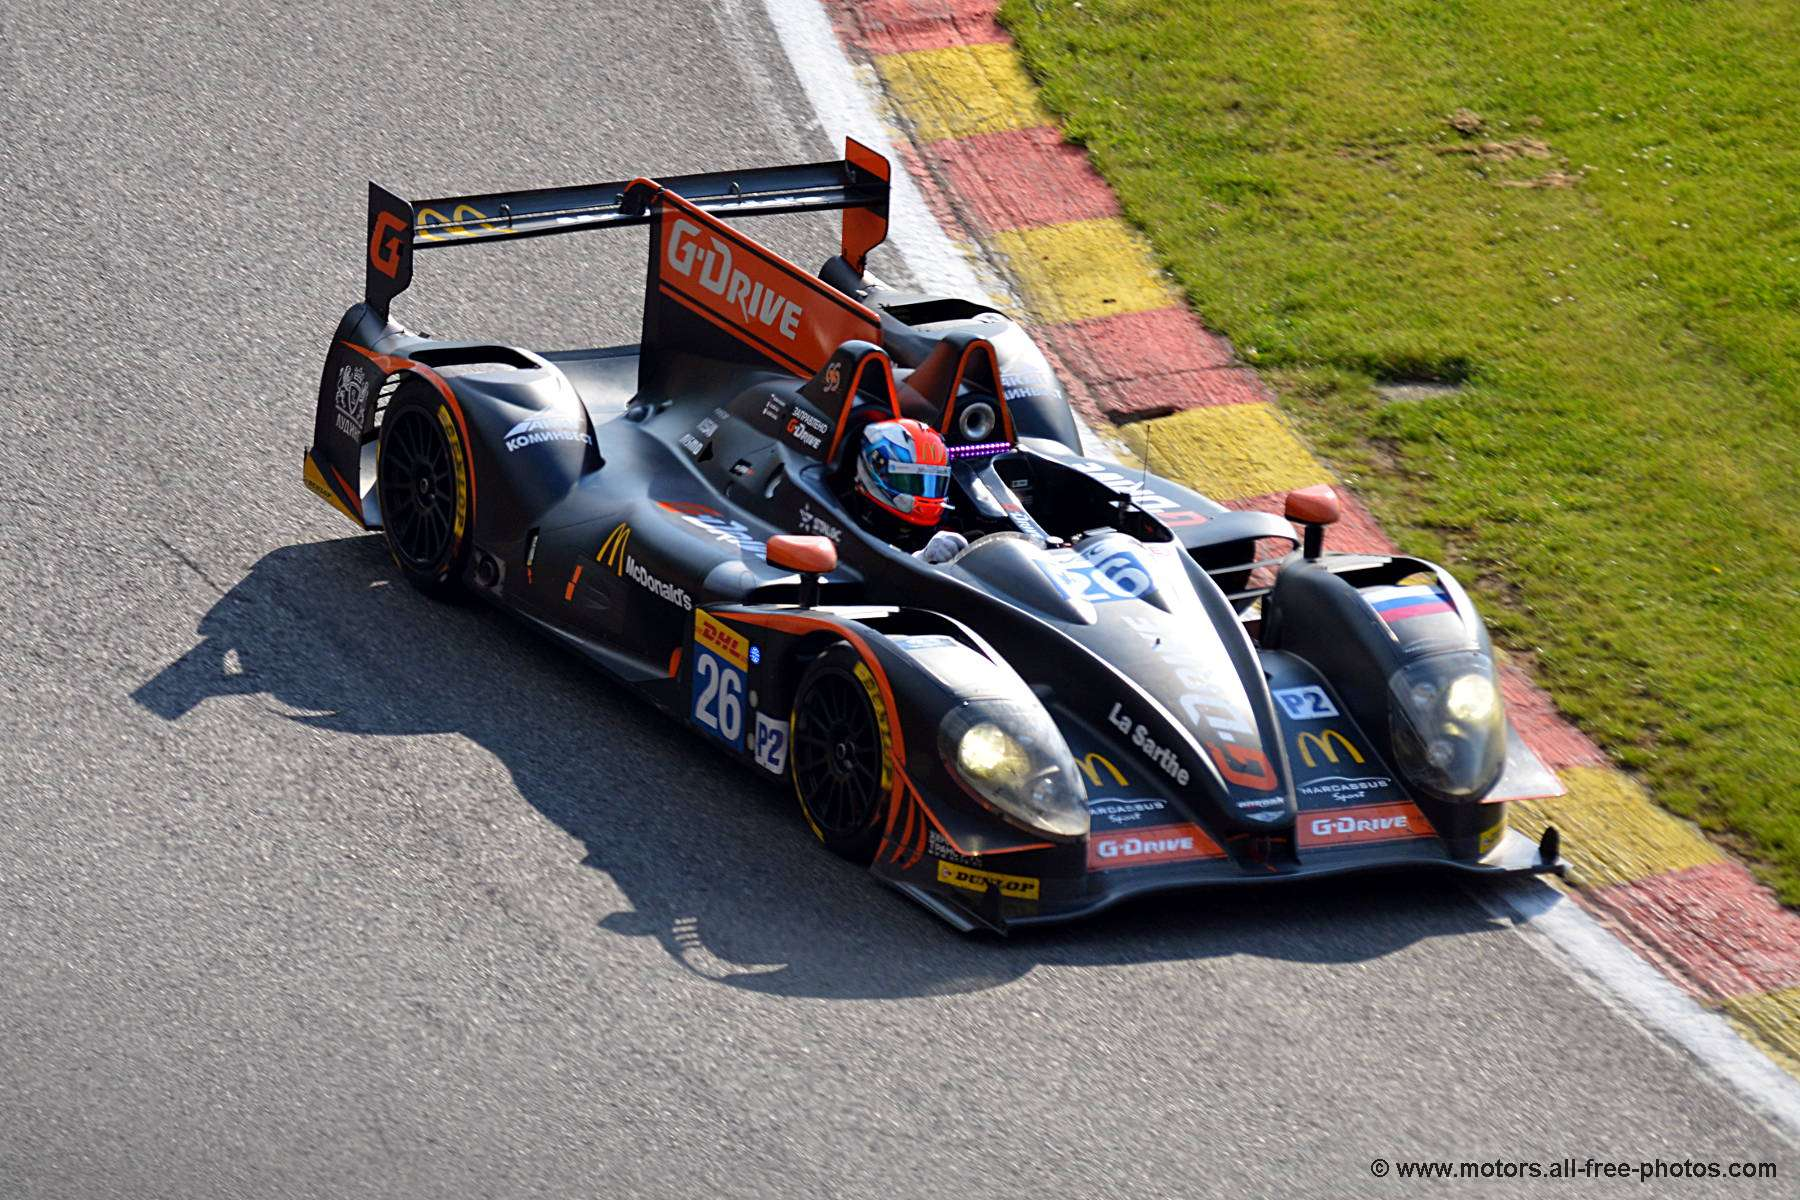 Morgan-Nissan - Team G-Drive Racing